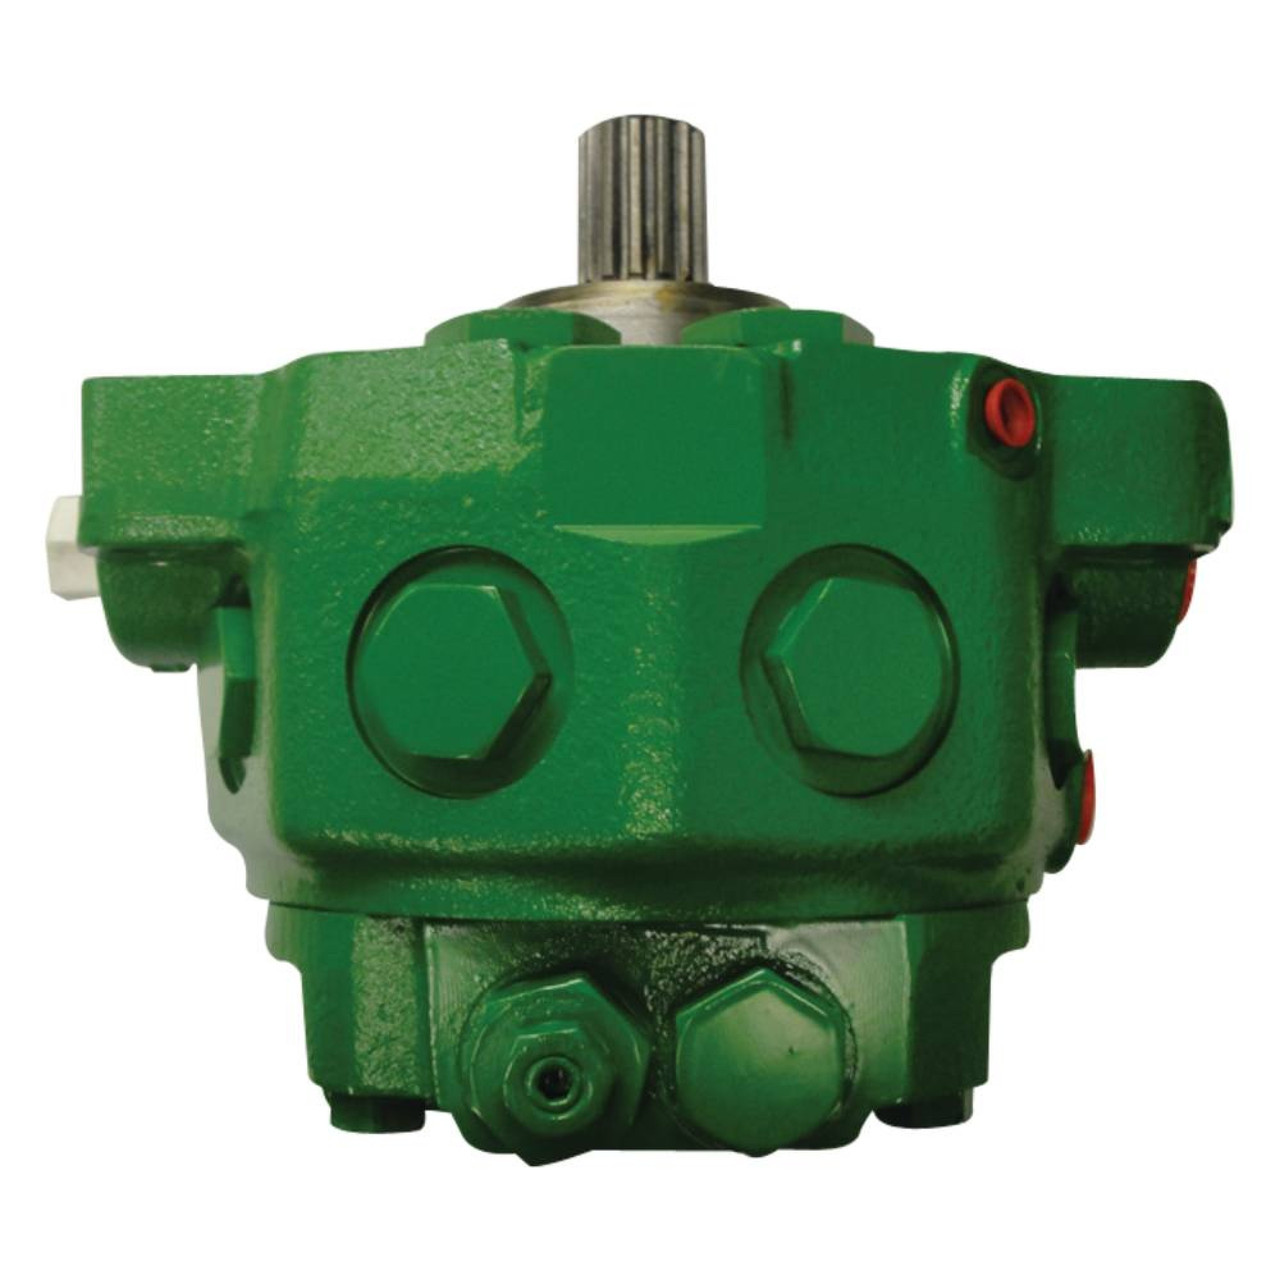 New Hydraulic Pump For John Deere Tractor AR94660 3010, 3020, 4000, on john deere 8410 lights wiring diagram, john deere 7920 lights wiring diagram, john deere 4640 lights wiring diagram, john deere 4030 lights wiring diagram, john deere 950 lights wiring diagram, john deere 3130 lights wiring diagram, john deere 4760 lights wiring diagram,